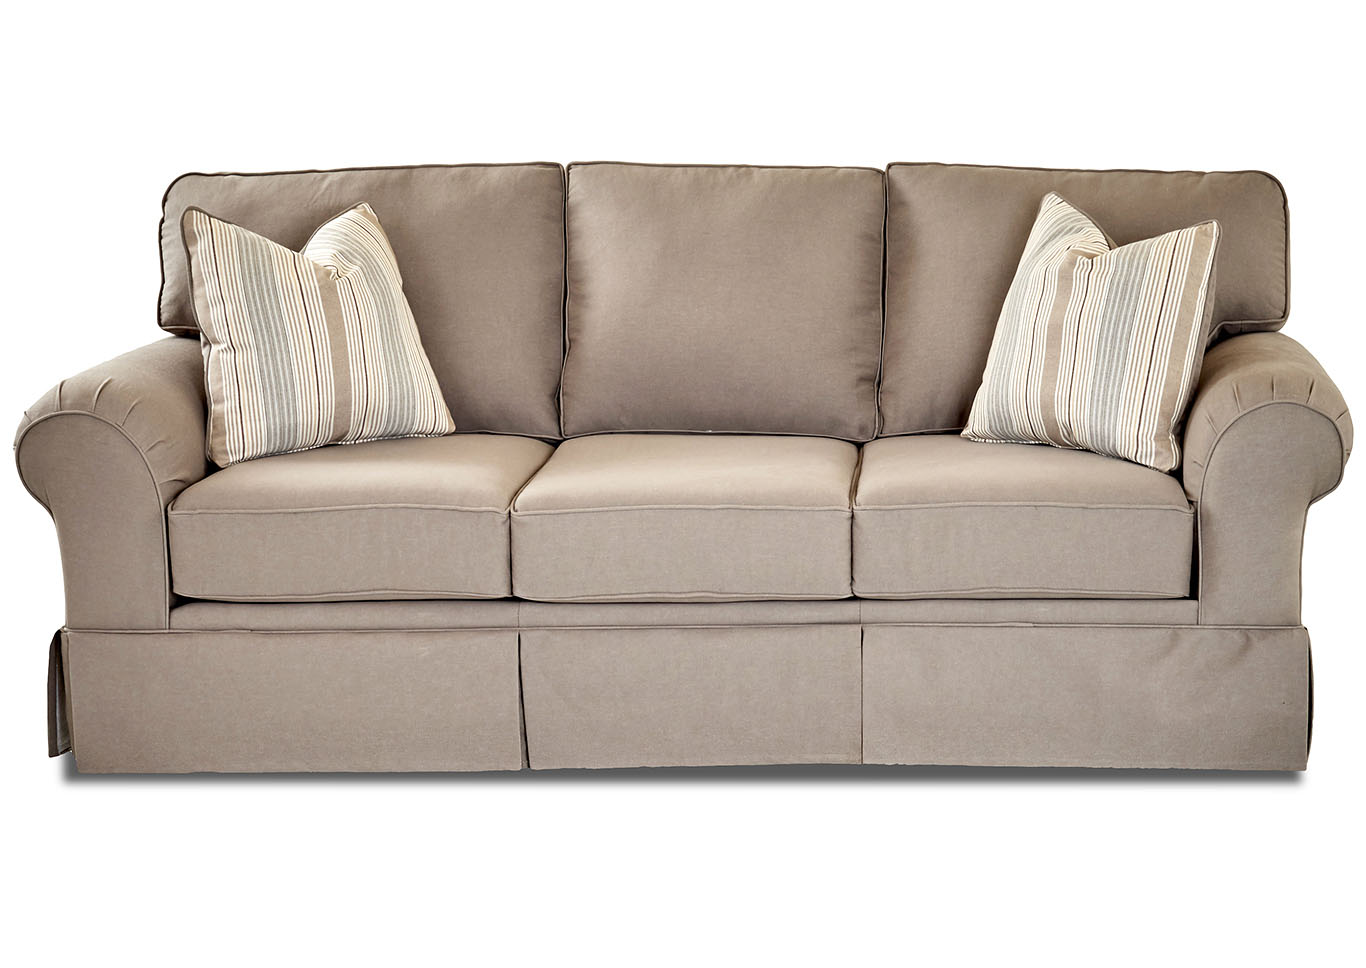 Woodwin Classic Smoke Fabric Sofa,Klaussner Home Furnishings